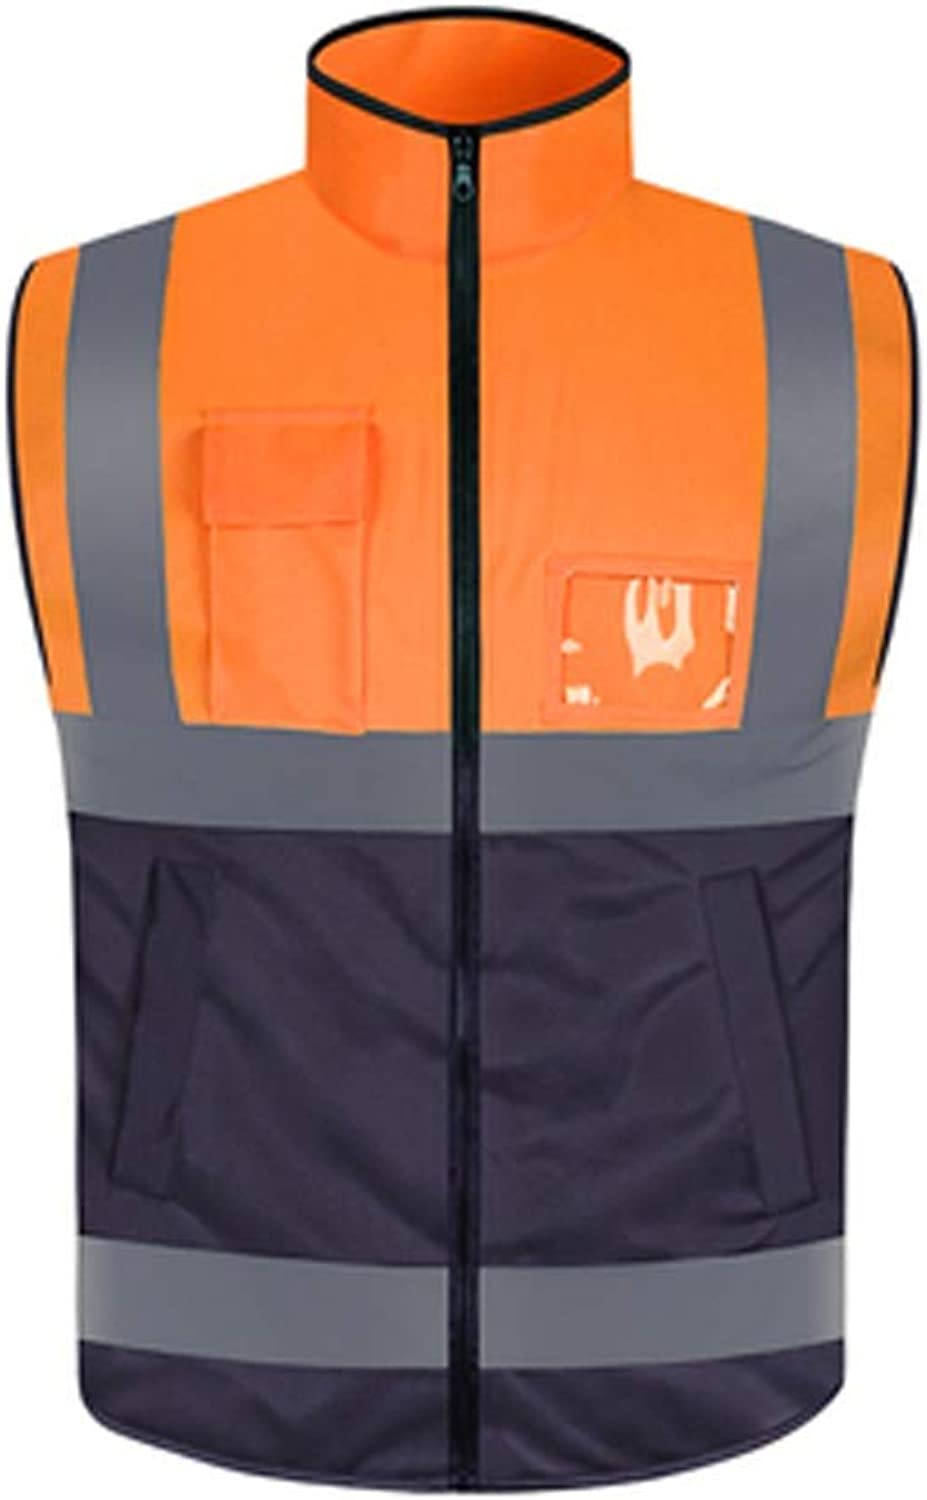 YJLGRYF Two Tone Safety Vest Reflective with Pockets and Zipper for Men and Women   High Visibility Vest with Reflective Stripes Yellow Black High Visible Vest with Reflective Stickers